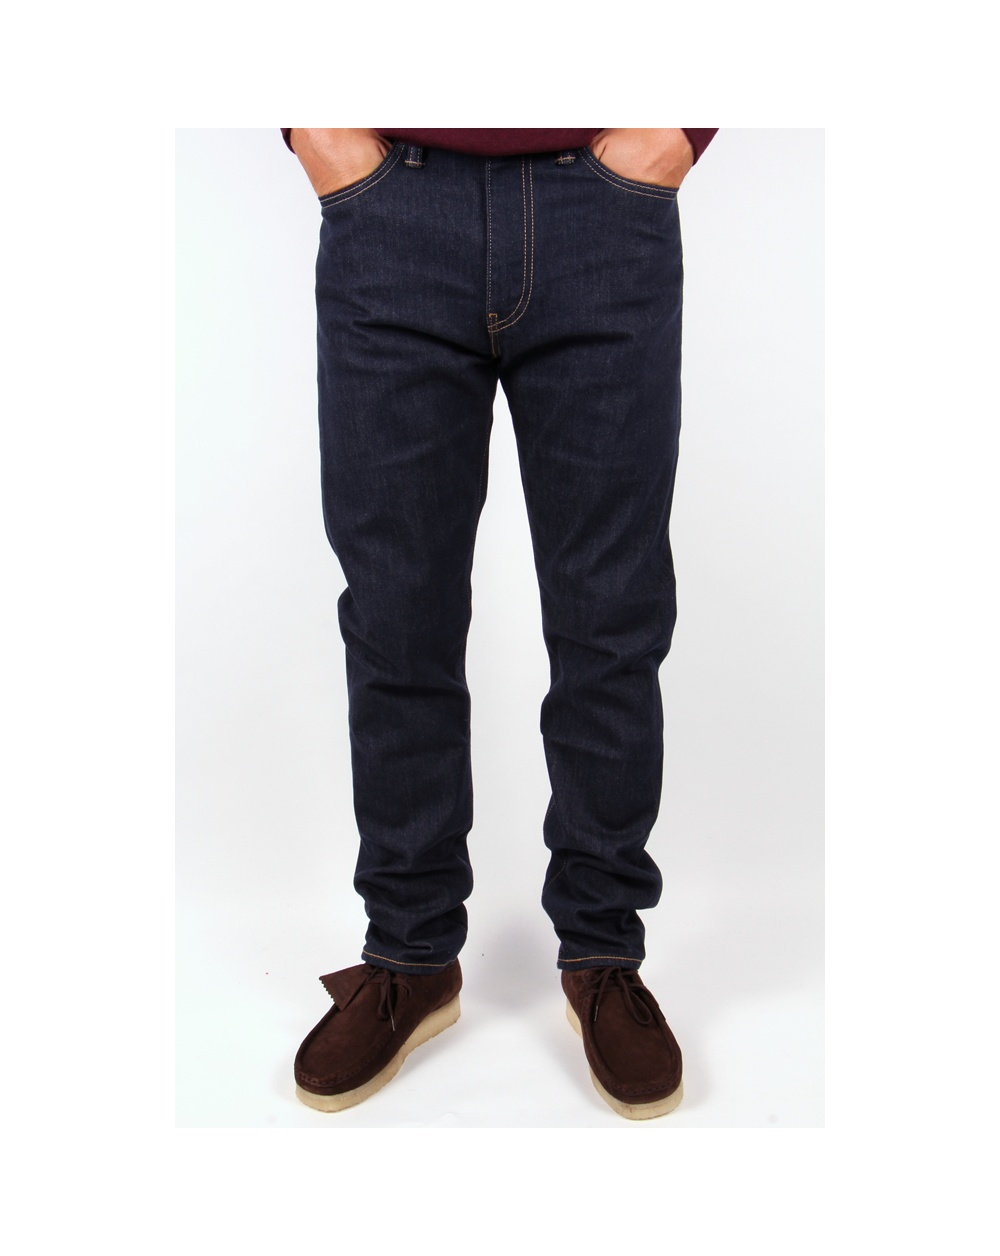 levis 522 slim taper jeans big bend denim mens tapered. Black Bedroom Furniture Sets. Home Design Ideas